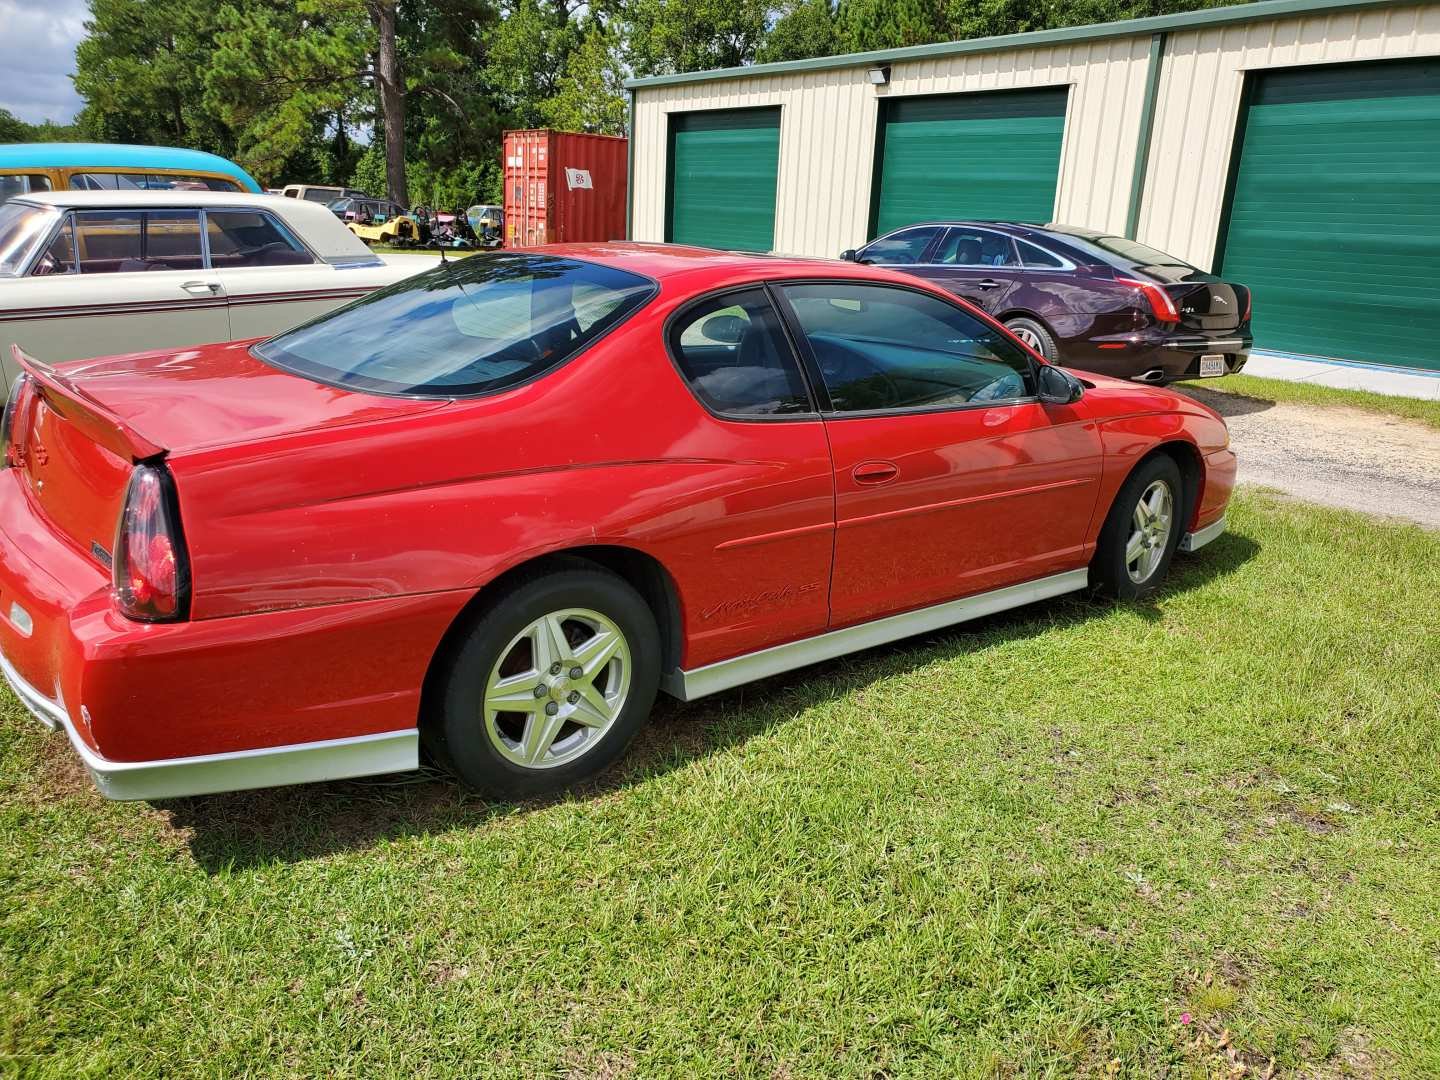 4th Image of a 2003 CHEVROLET MONTE CARLO SS